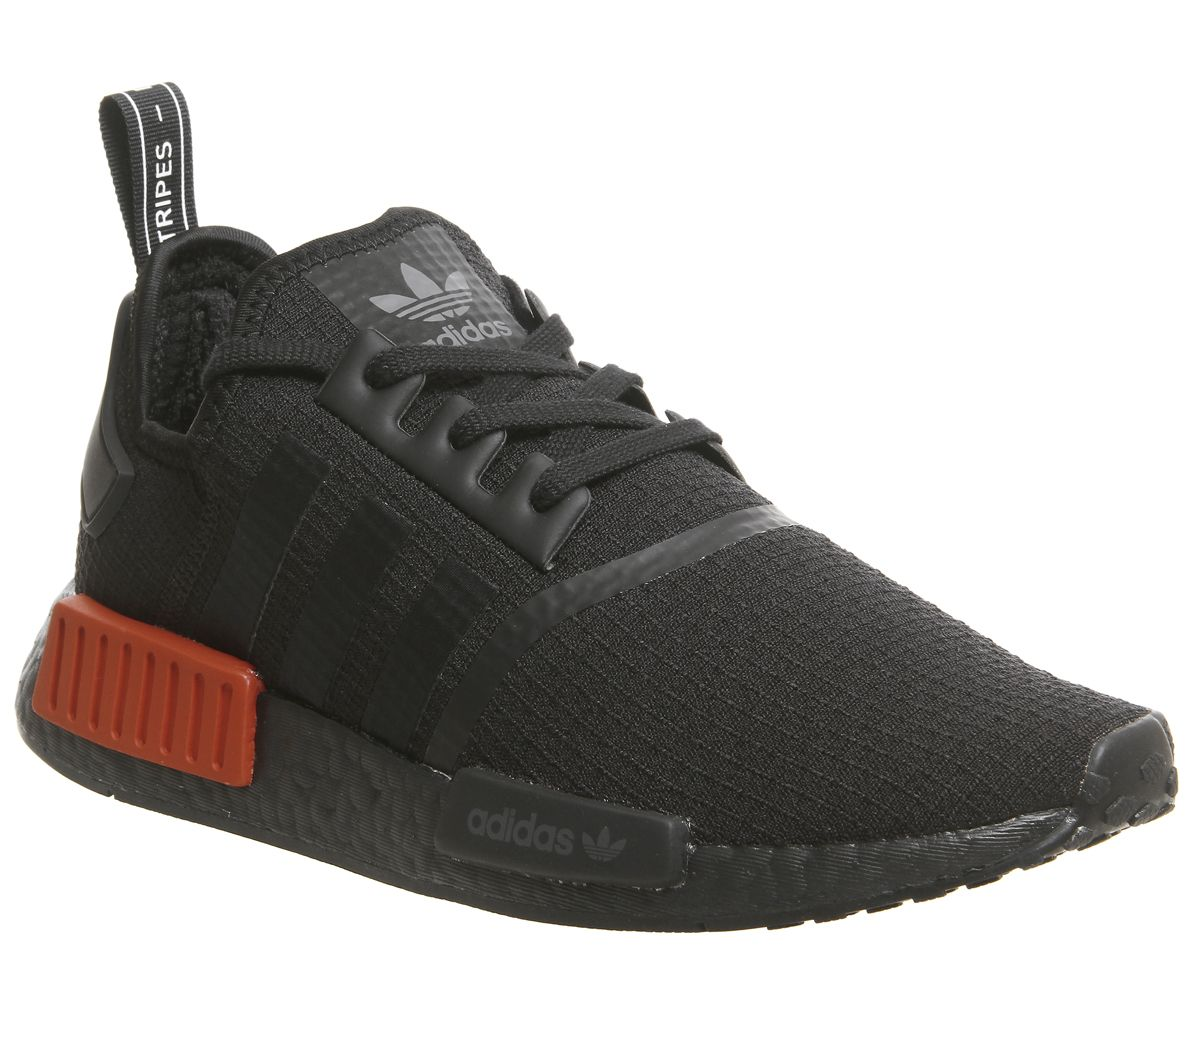 76a6ea7e9 adidas Nmd R1 Trainers Core Black Lush Red - His trainers